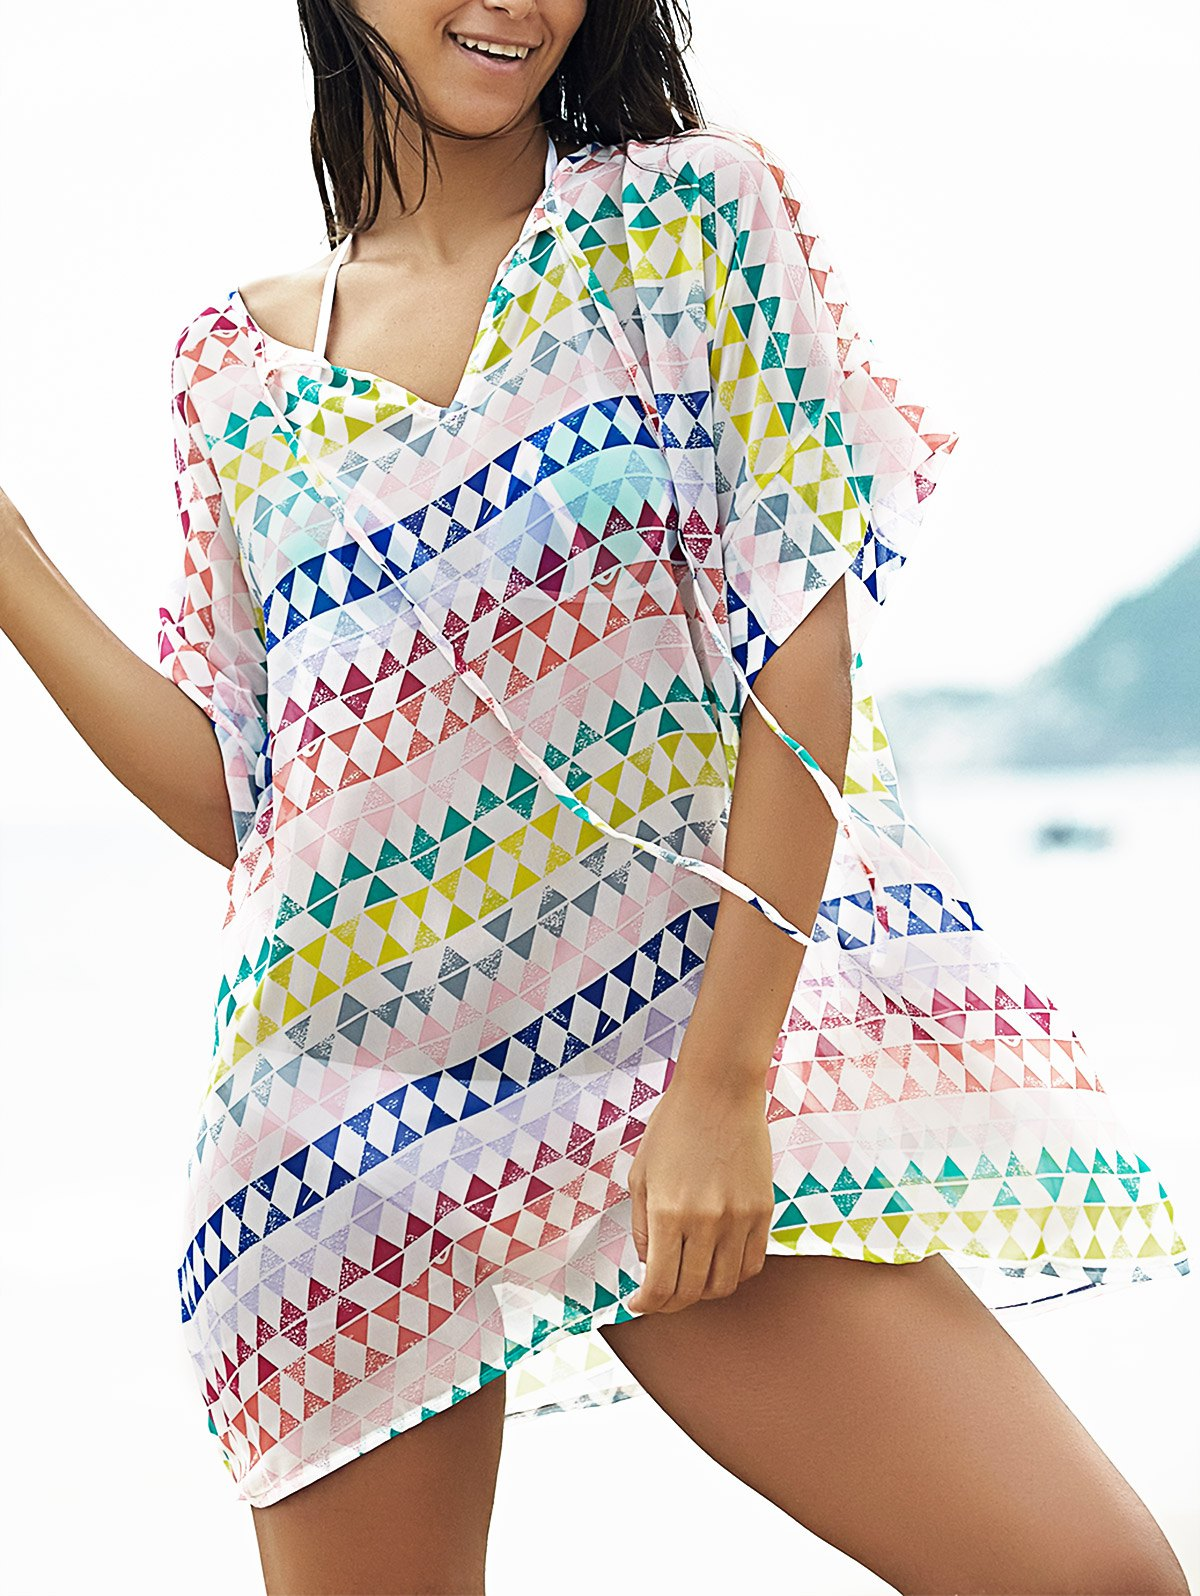 Loose Geometric Print Plunging Neck Bat-Wing Sleeve Cover Up